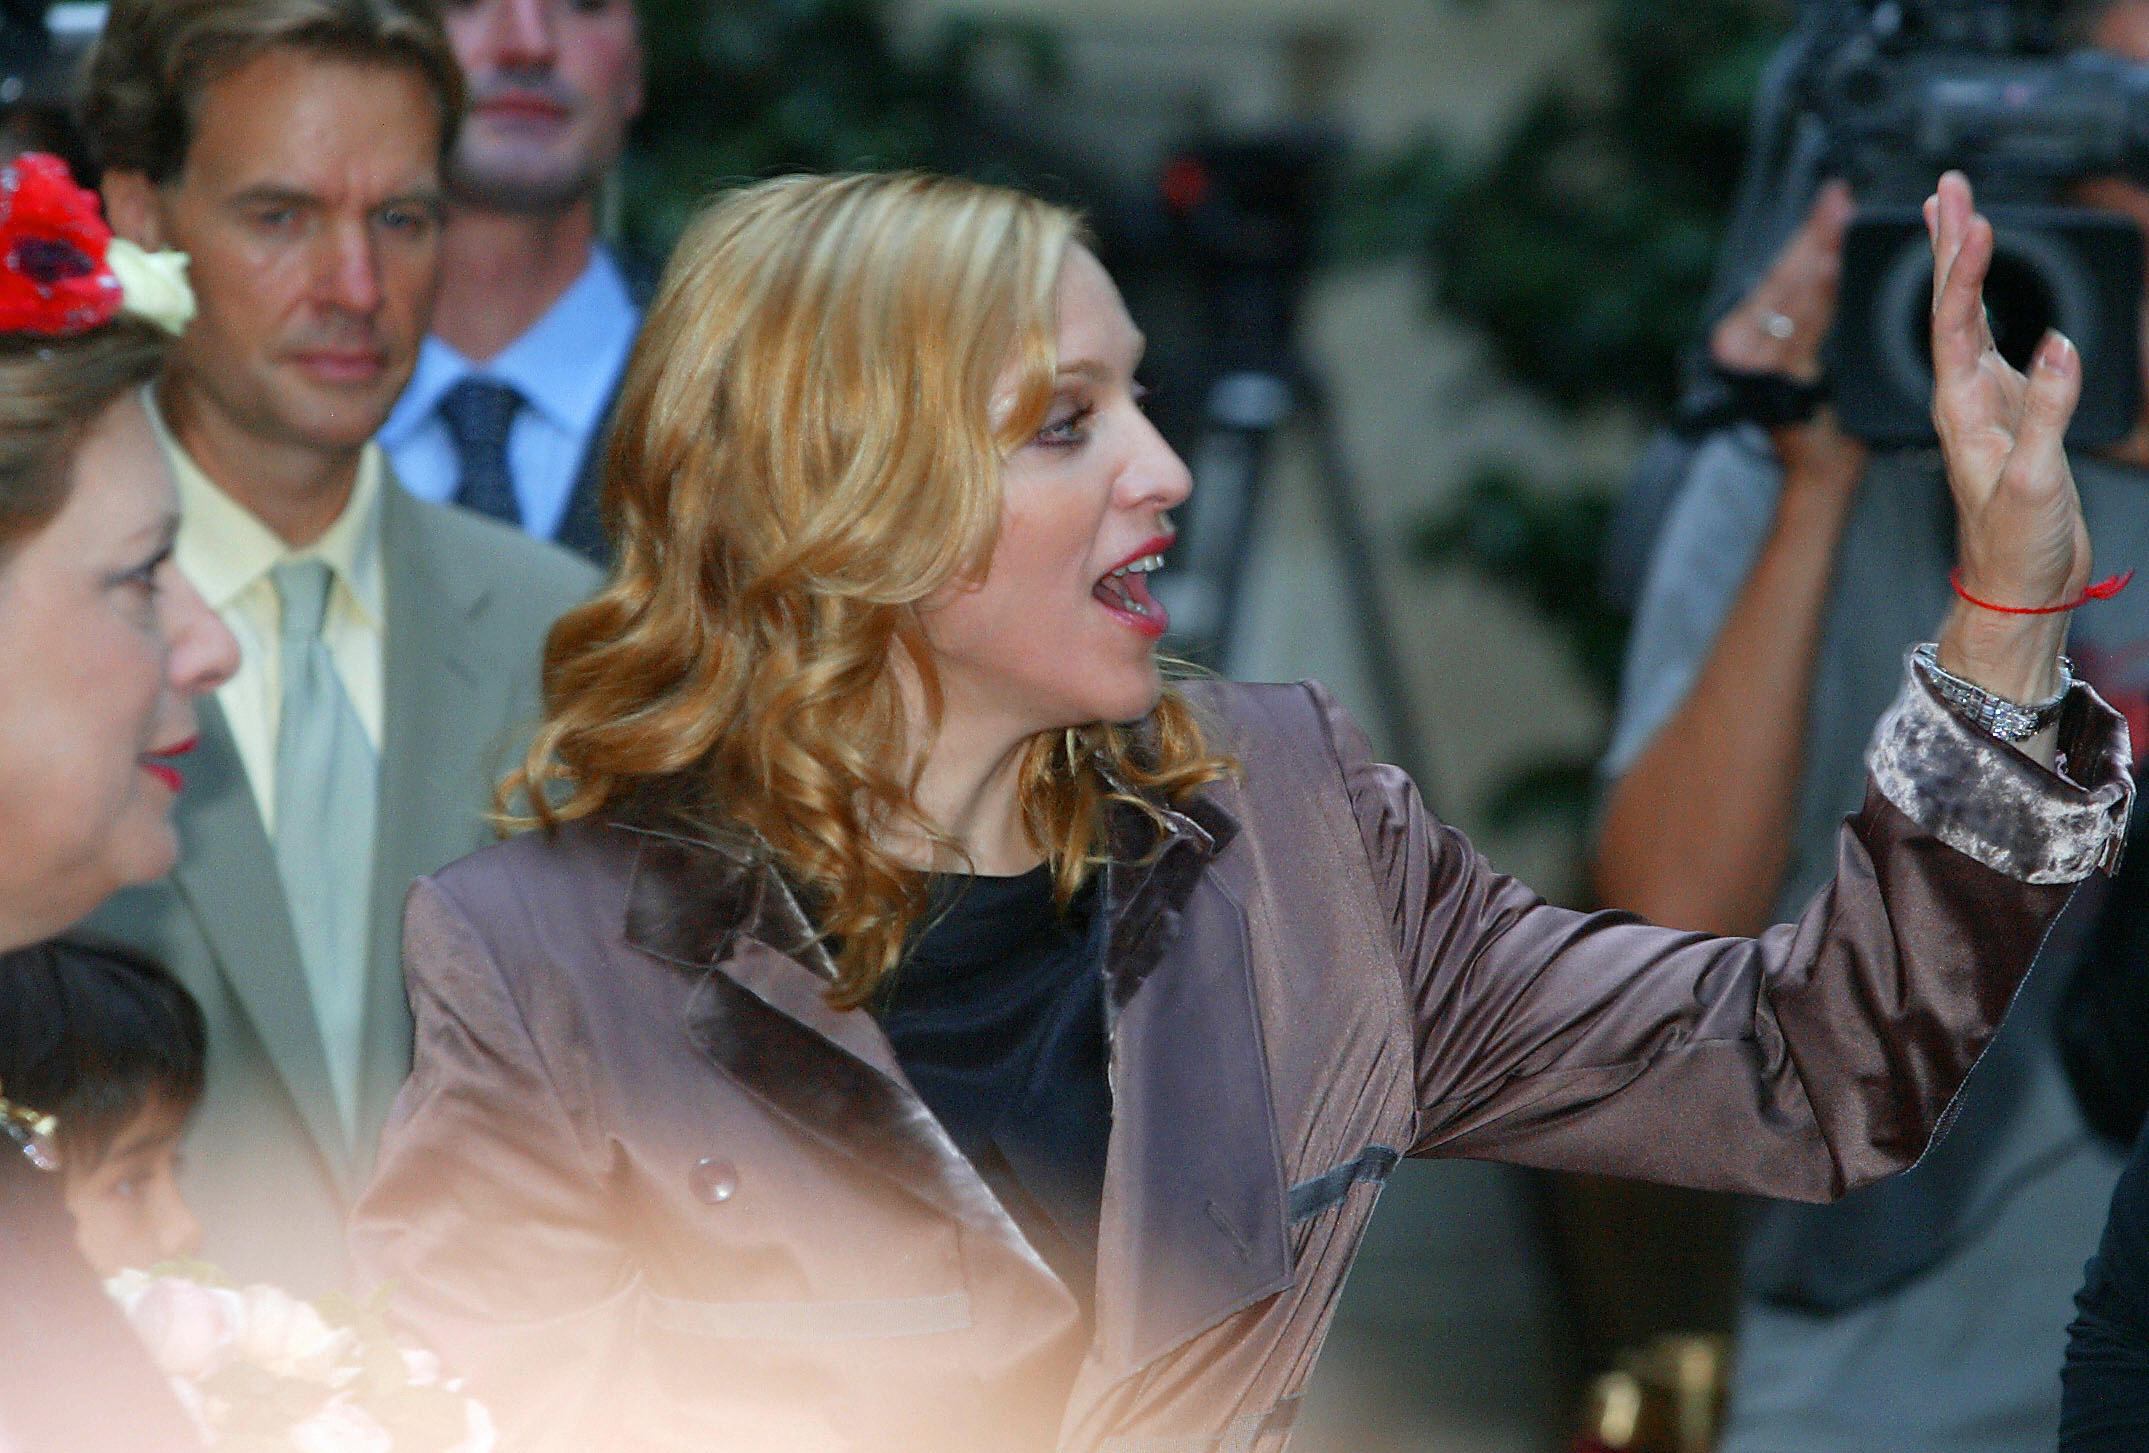 Rock star Madonna promotes her children's books inspired by Kabbalah.